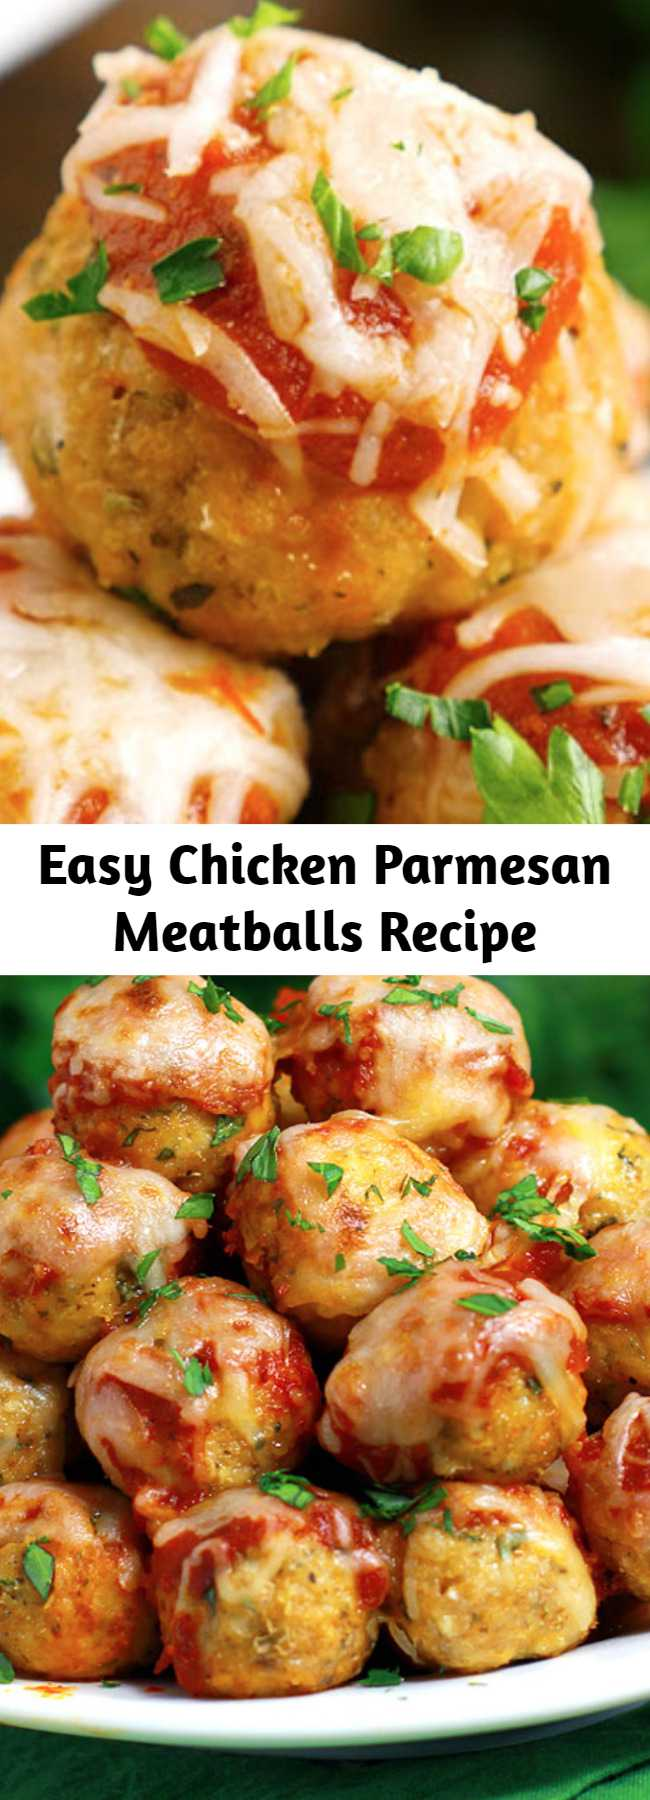 Easy Chicken Parmesan Meatballs Recipe - Chicken Parmesan Meatballs are your favorite chicken Parmesan transformed into these tender and flavorful, saucy baked chicken meatballs.Topped with the perfect blend of ooey gooey cheese. You're going to love 'em! #ChickenParmesan #Meatballs